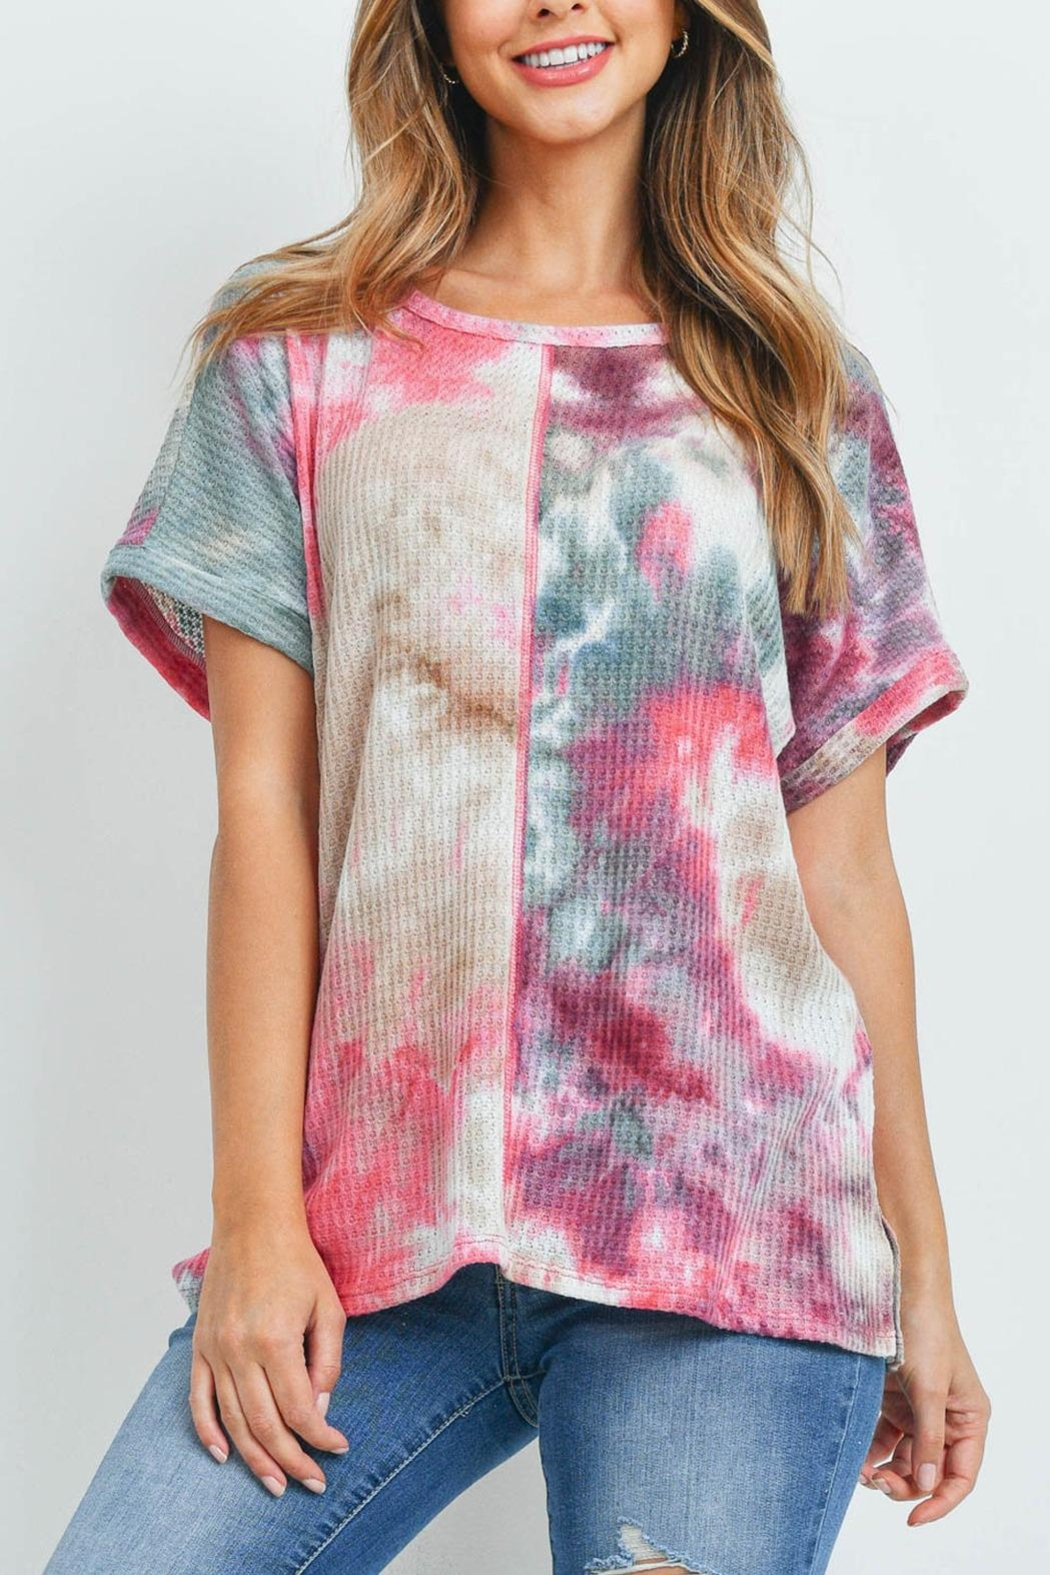 Riah Fashion Reverse-Cover-Stitch-Waffle-Tie-Dye-Top - Front Cropped Image